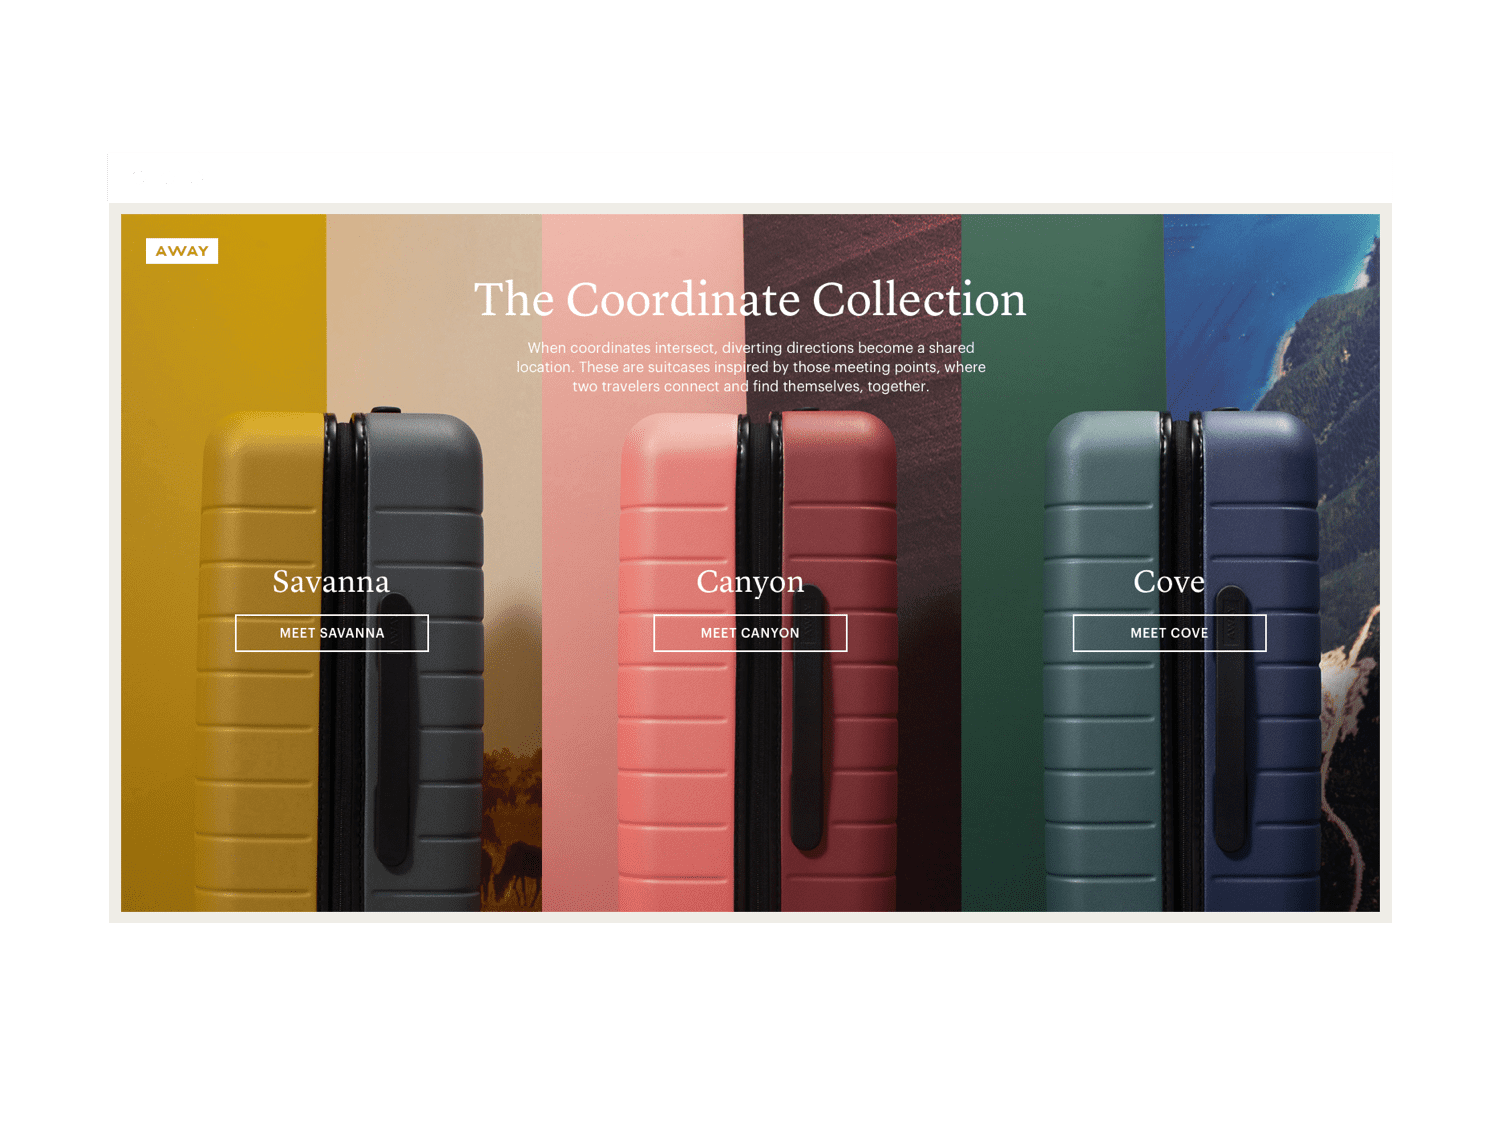 The Coordinate Collection